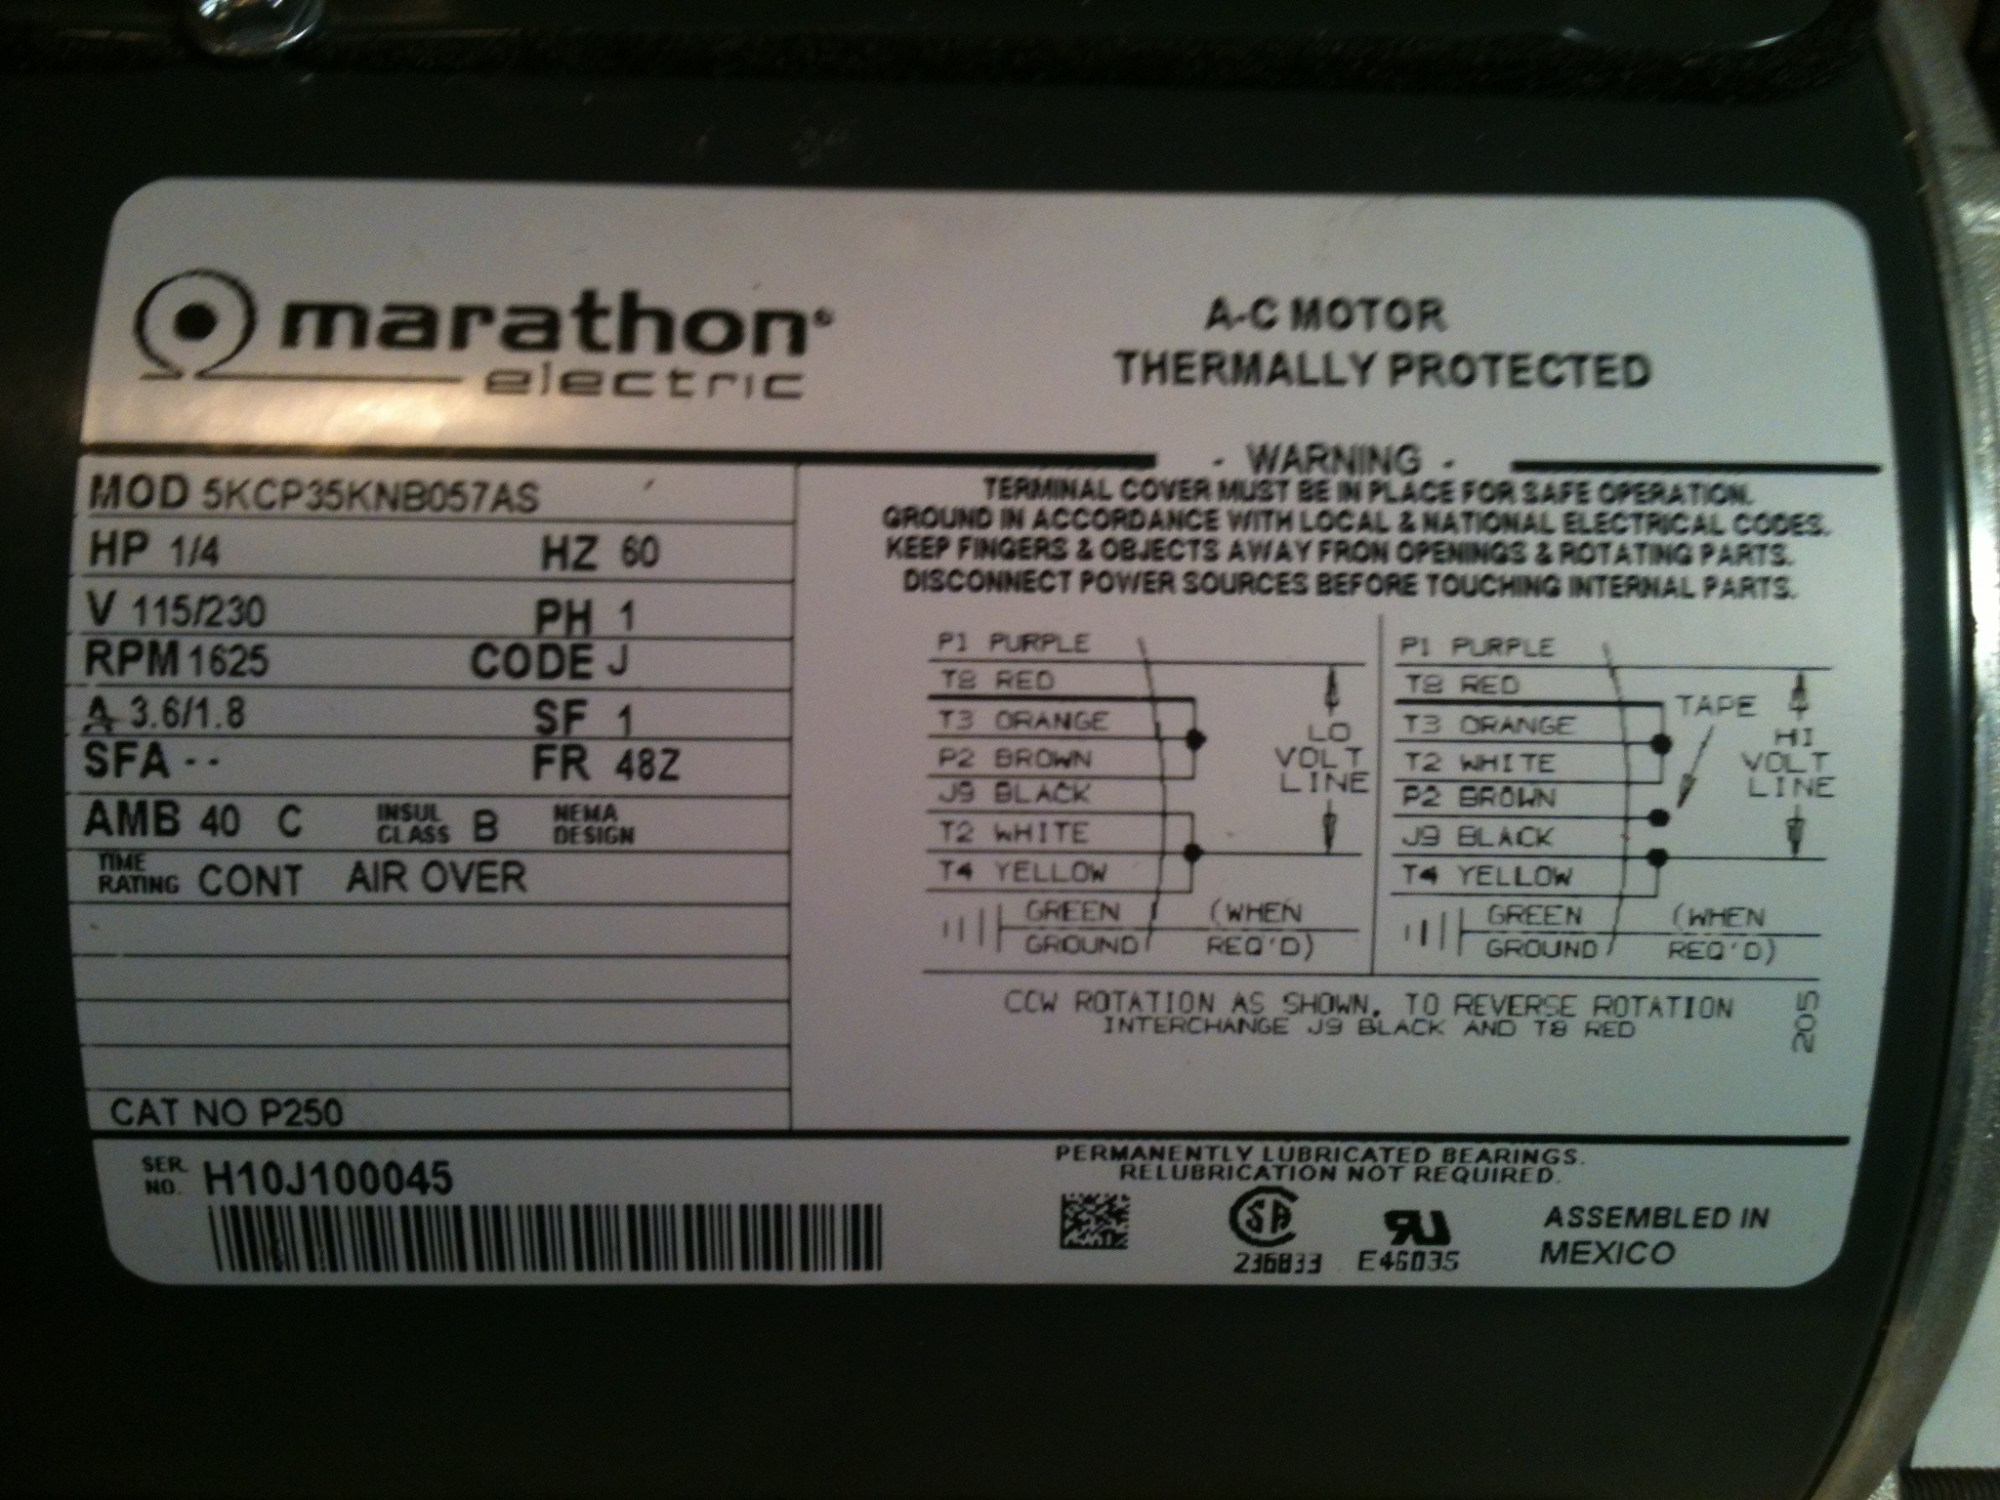 hight resolution of electric motor marathon electric motor wiring diagram marathon electric motor wiring 3 phase marathon electric motor schematic